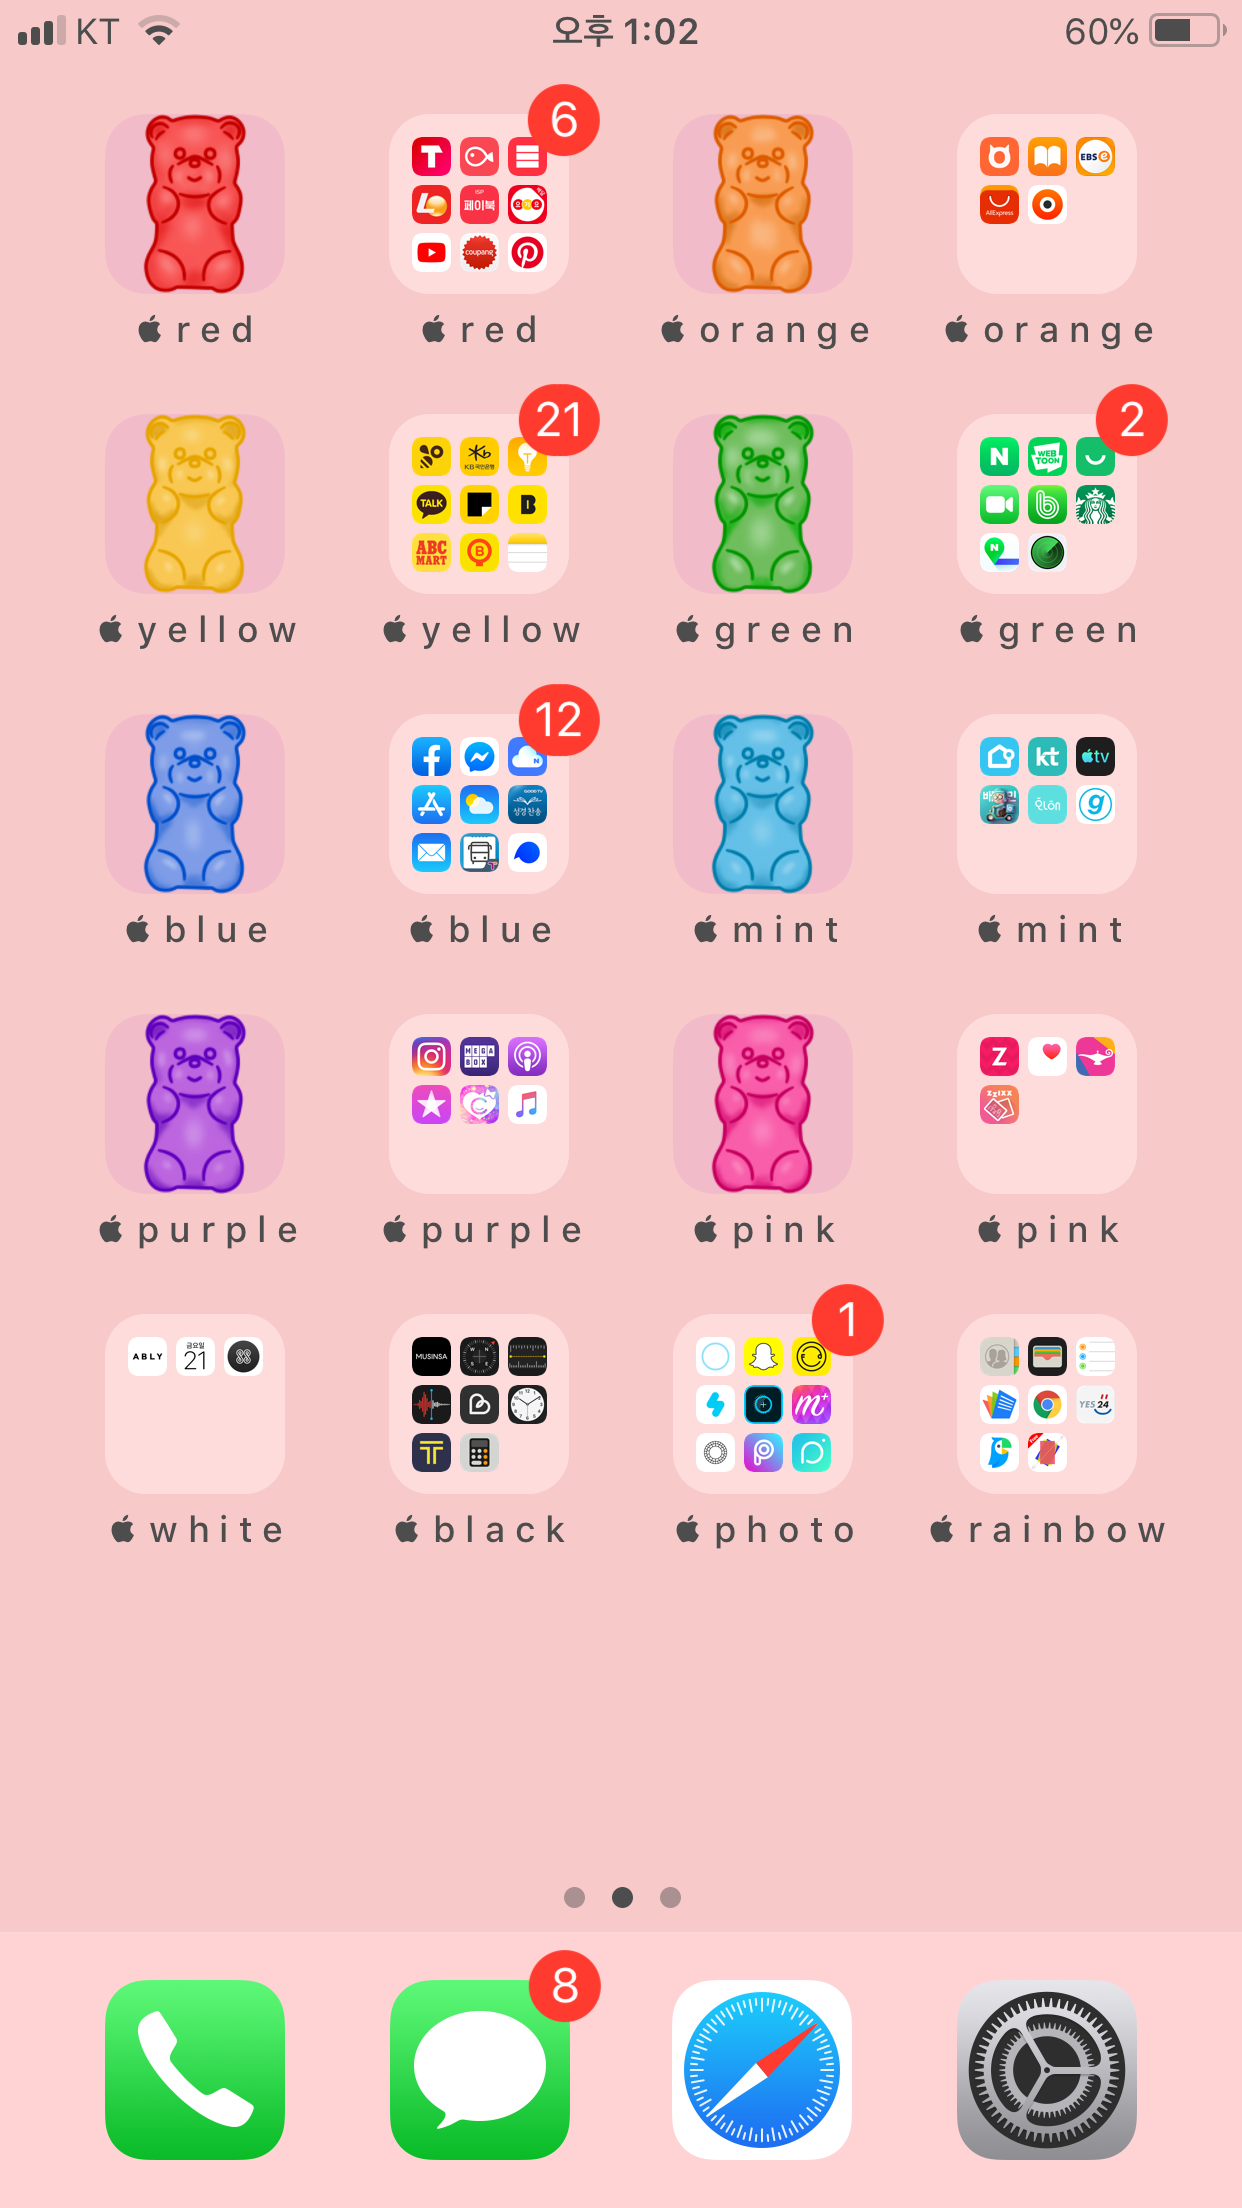 My New Wallpaper So So Cute Iphone Wallpapers Gummybears Cocoppa In 2020 Organize Phone Apps Phone Apps Iphone Iphone App Layout